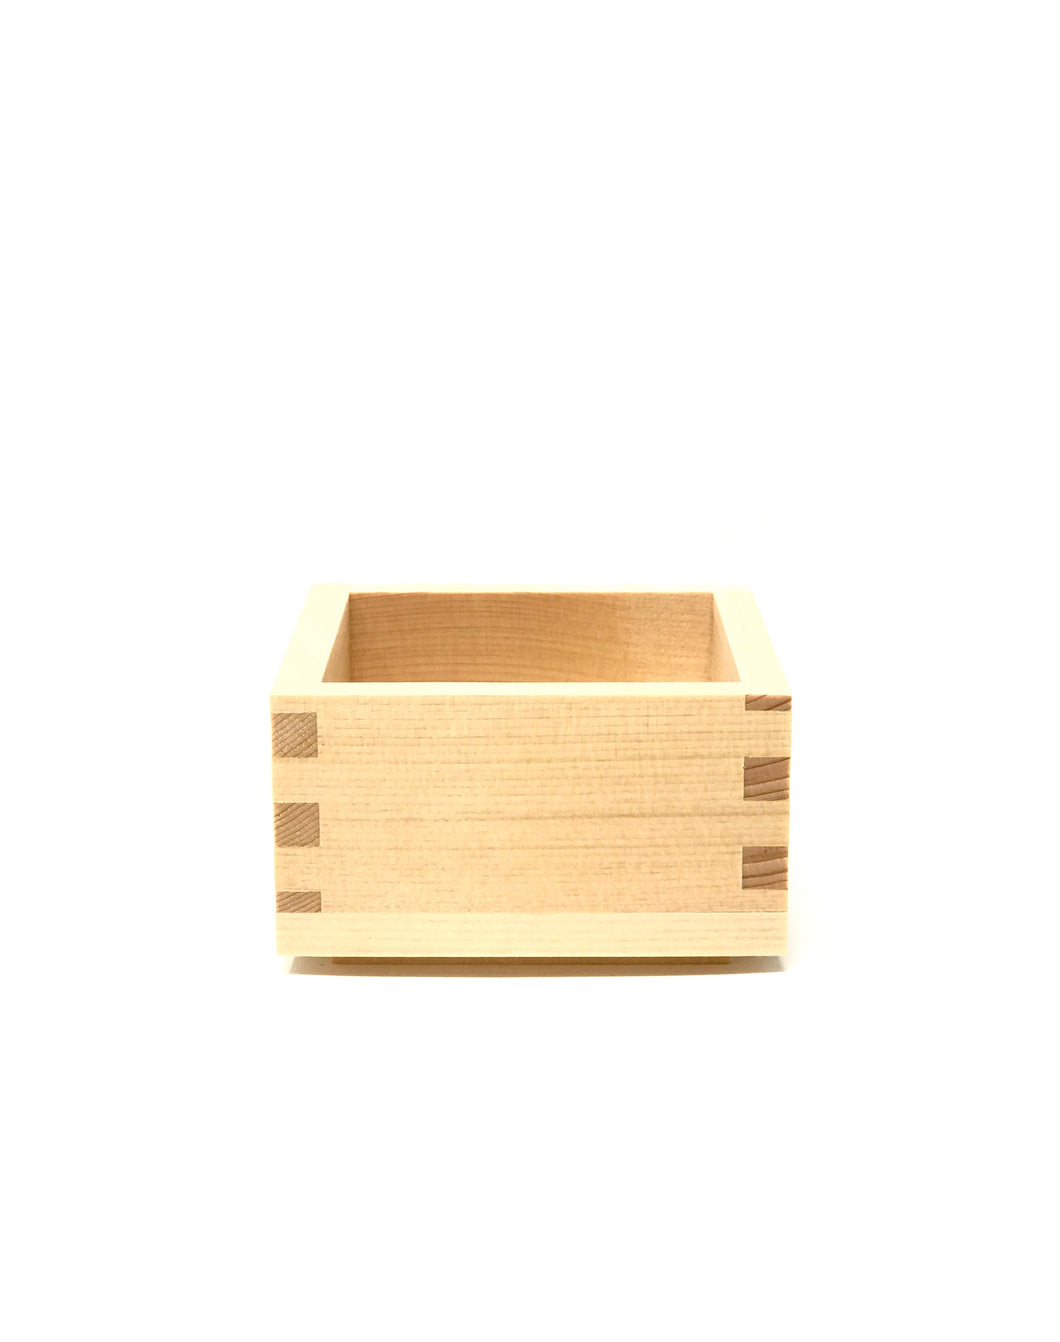 Hakomasu Box, Small